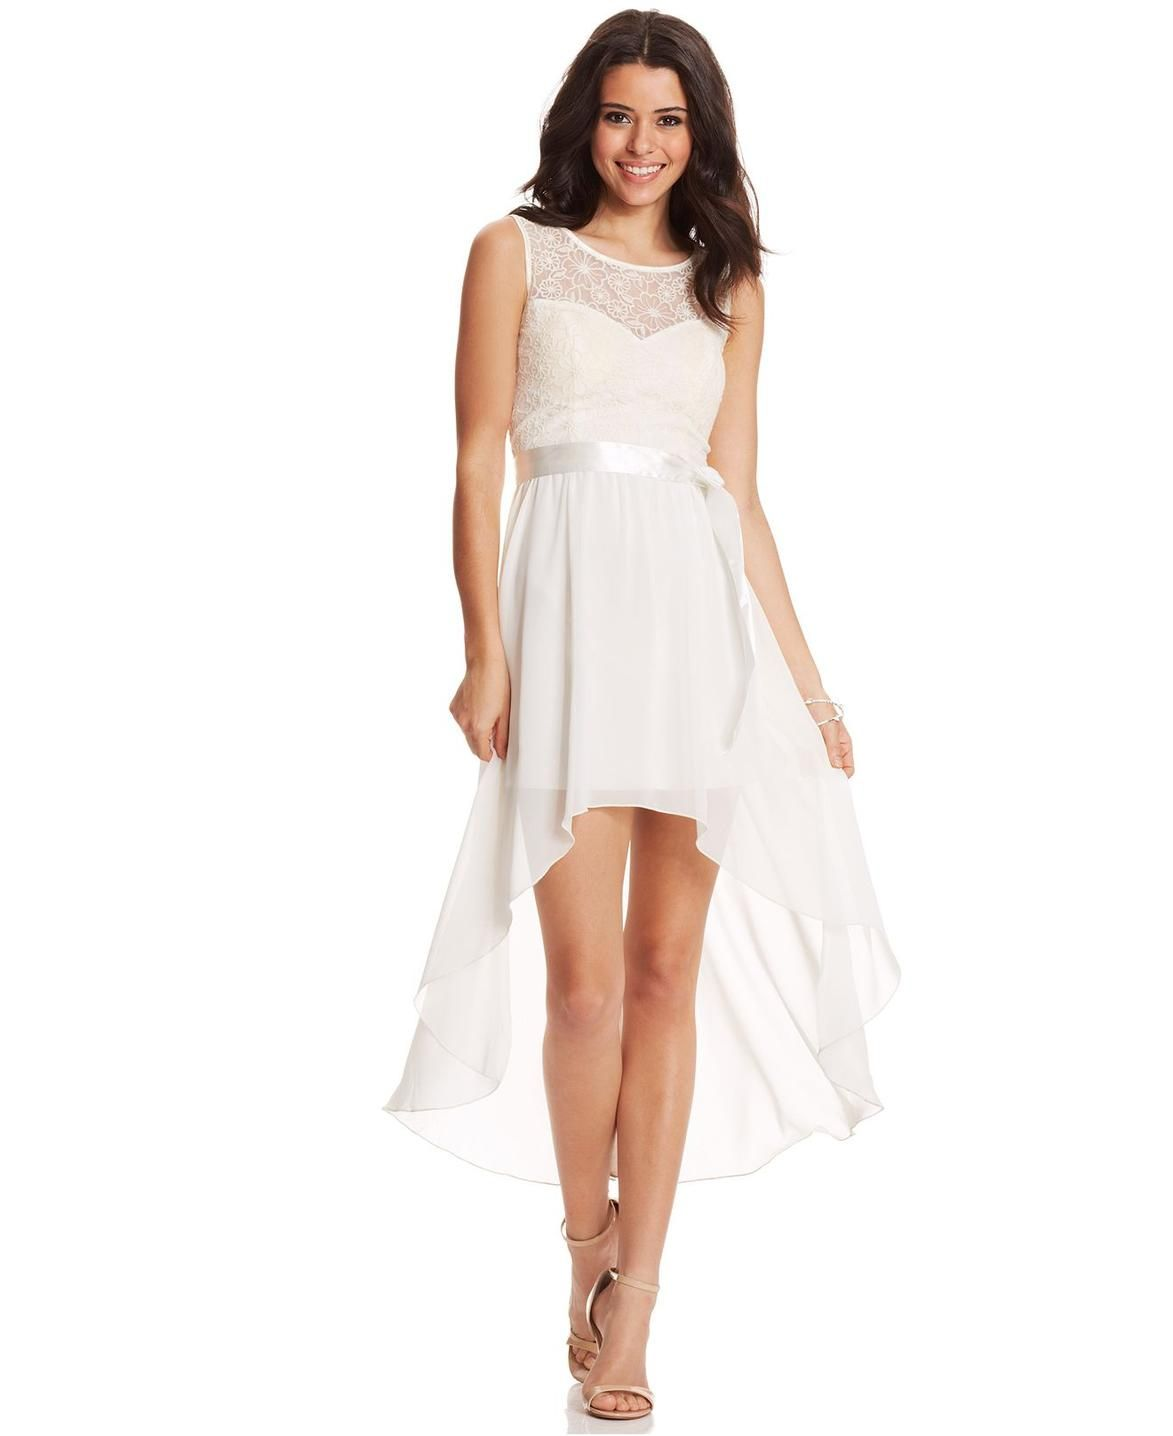 100 Teenage Dresses For A Wedding Plus Size Dresses For Wedding Guests Check More At Http Www Teenage Girls Dresses Popular Wedding Dresses Teenage Dress